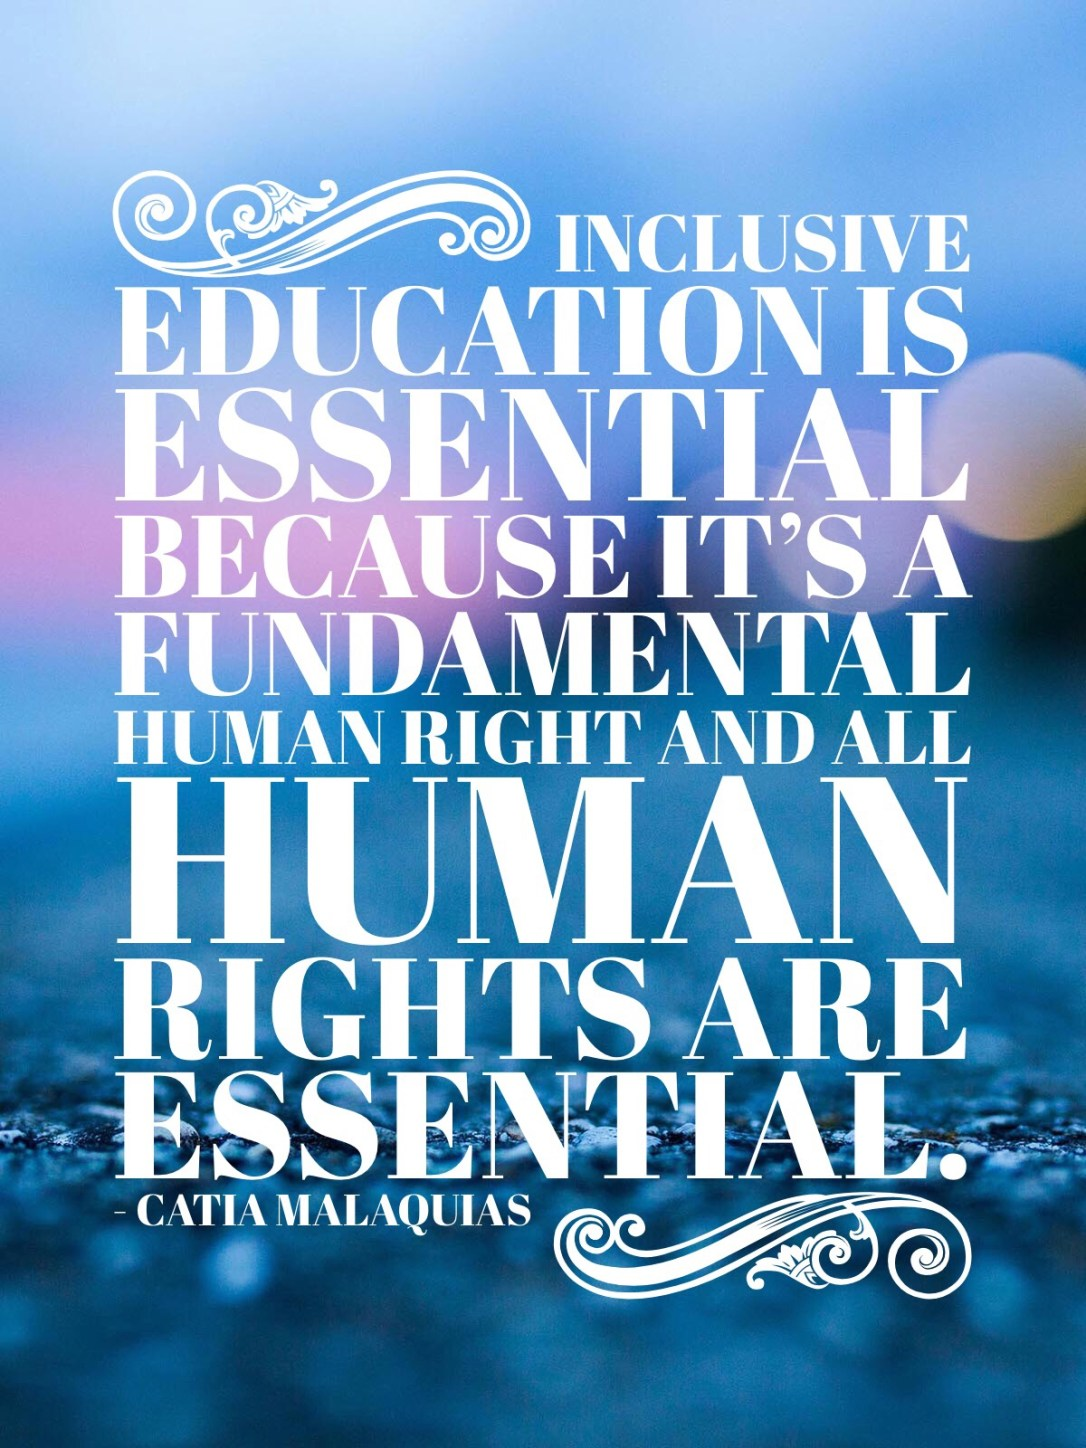 Inclusive education is essential because it's a fundamental human right and all human rights are essential.  - Catia Malaquias